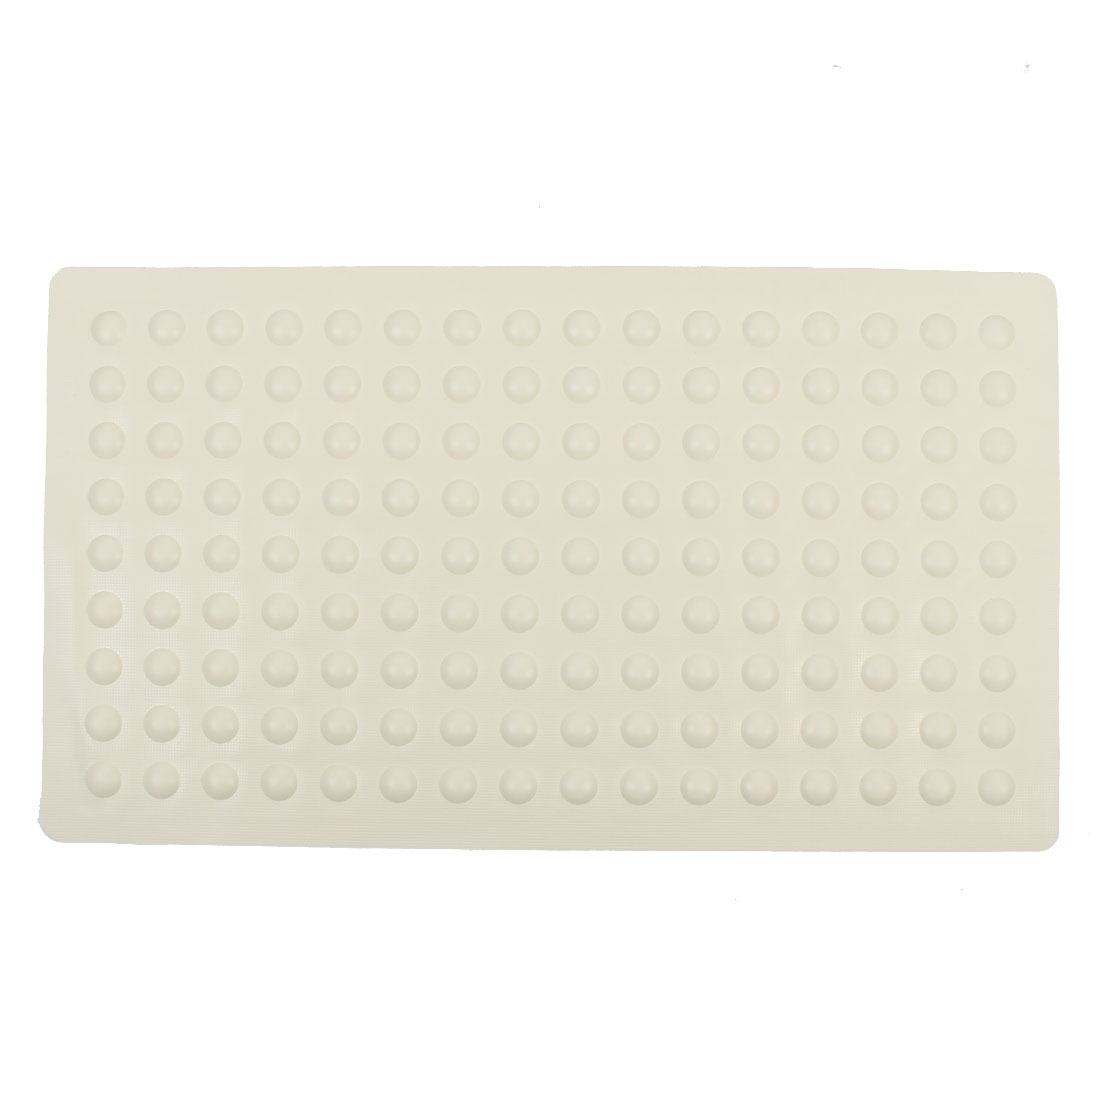 Gym Bathroom Hotel Rubber Big Bubble Massage Non Slip Bath Mat Beige 40cm x 70cm